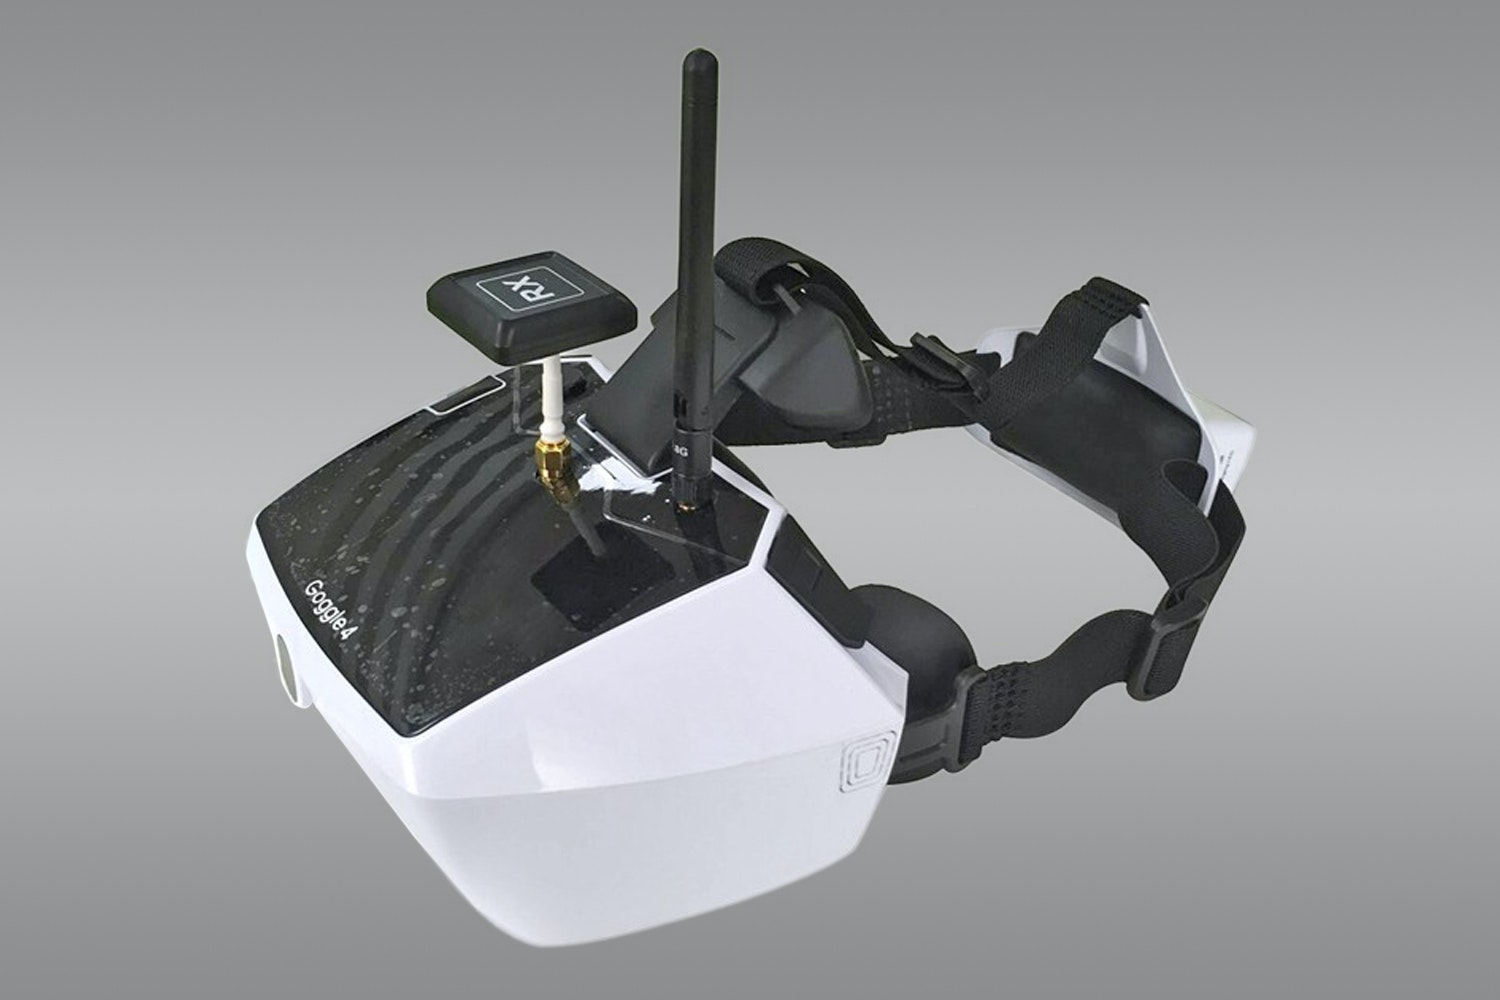 Walkera Goggle 4 FPV 5.8GHz Headset